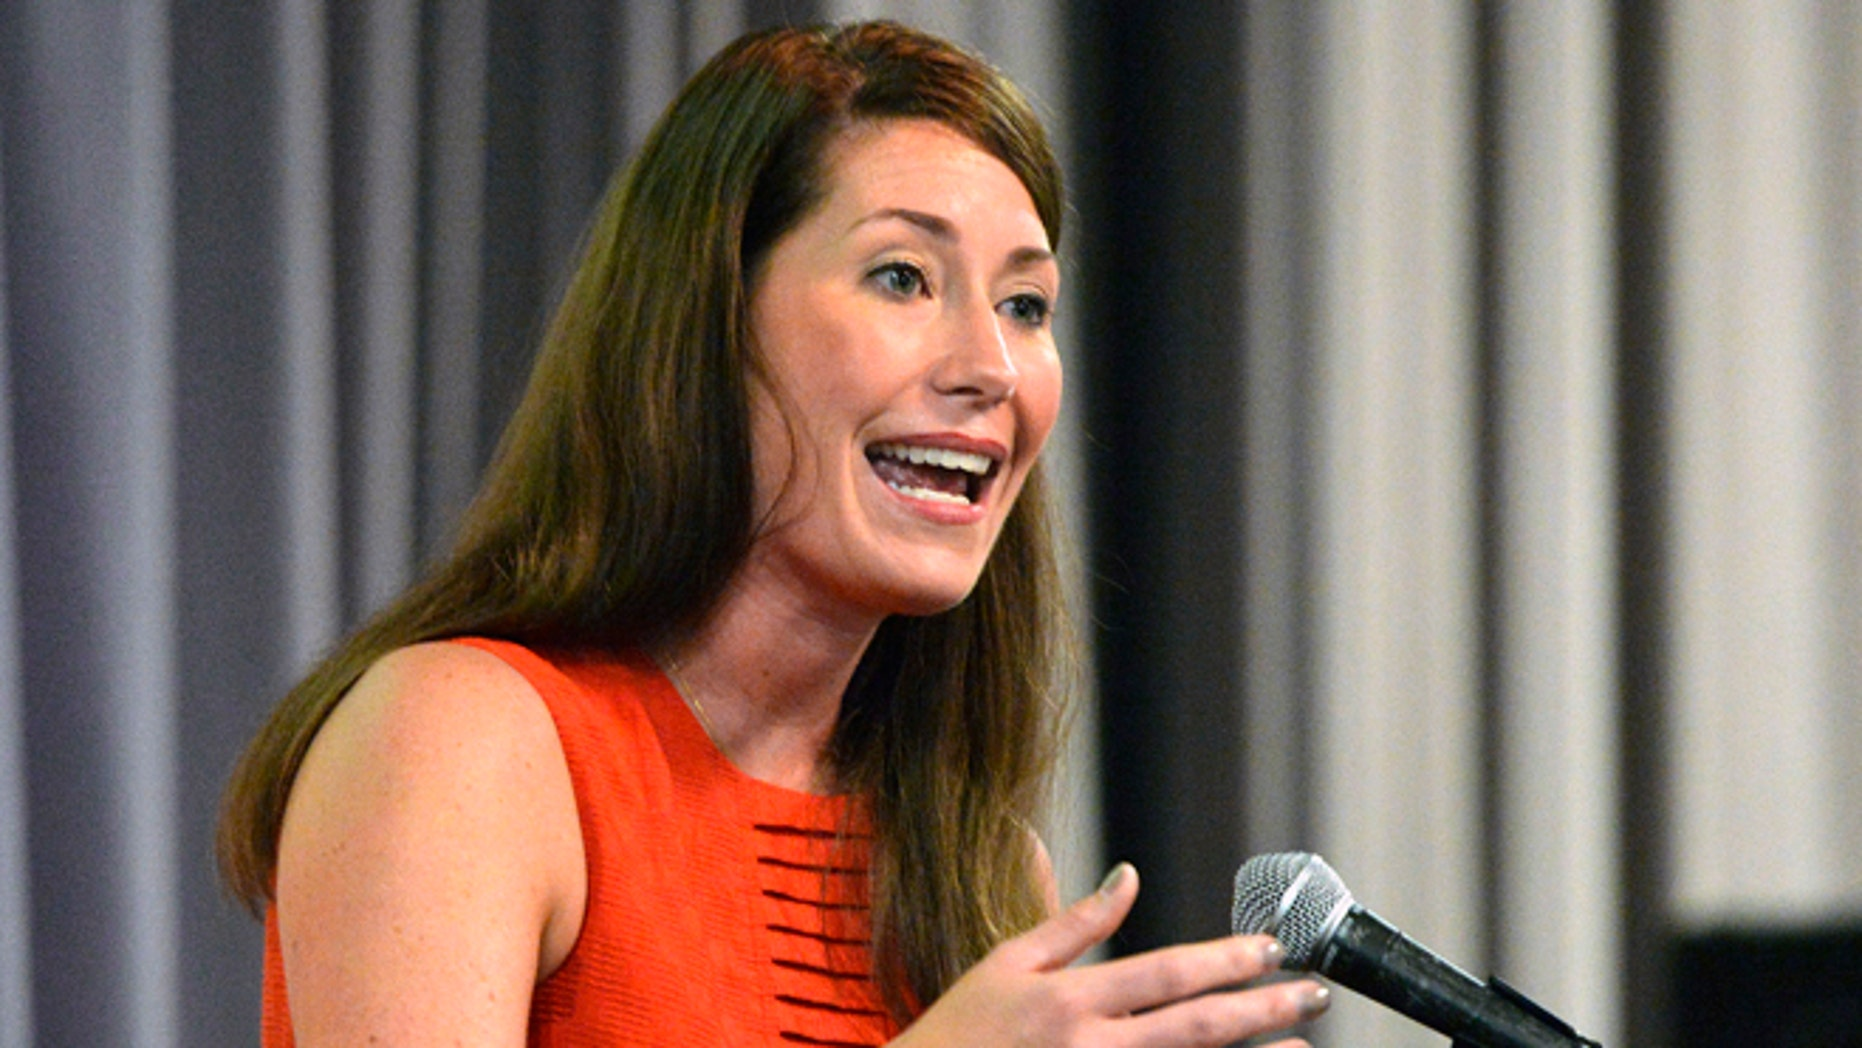 Kentucky Secretary of State Alison Grimes – who was thrust into the Democratic limelight when she challenged Sen. Mitch McConnell, the Republican Senate majority leader, for his seat in 2014 – is now the subject of investigation by three state agencies, according to a report.